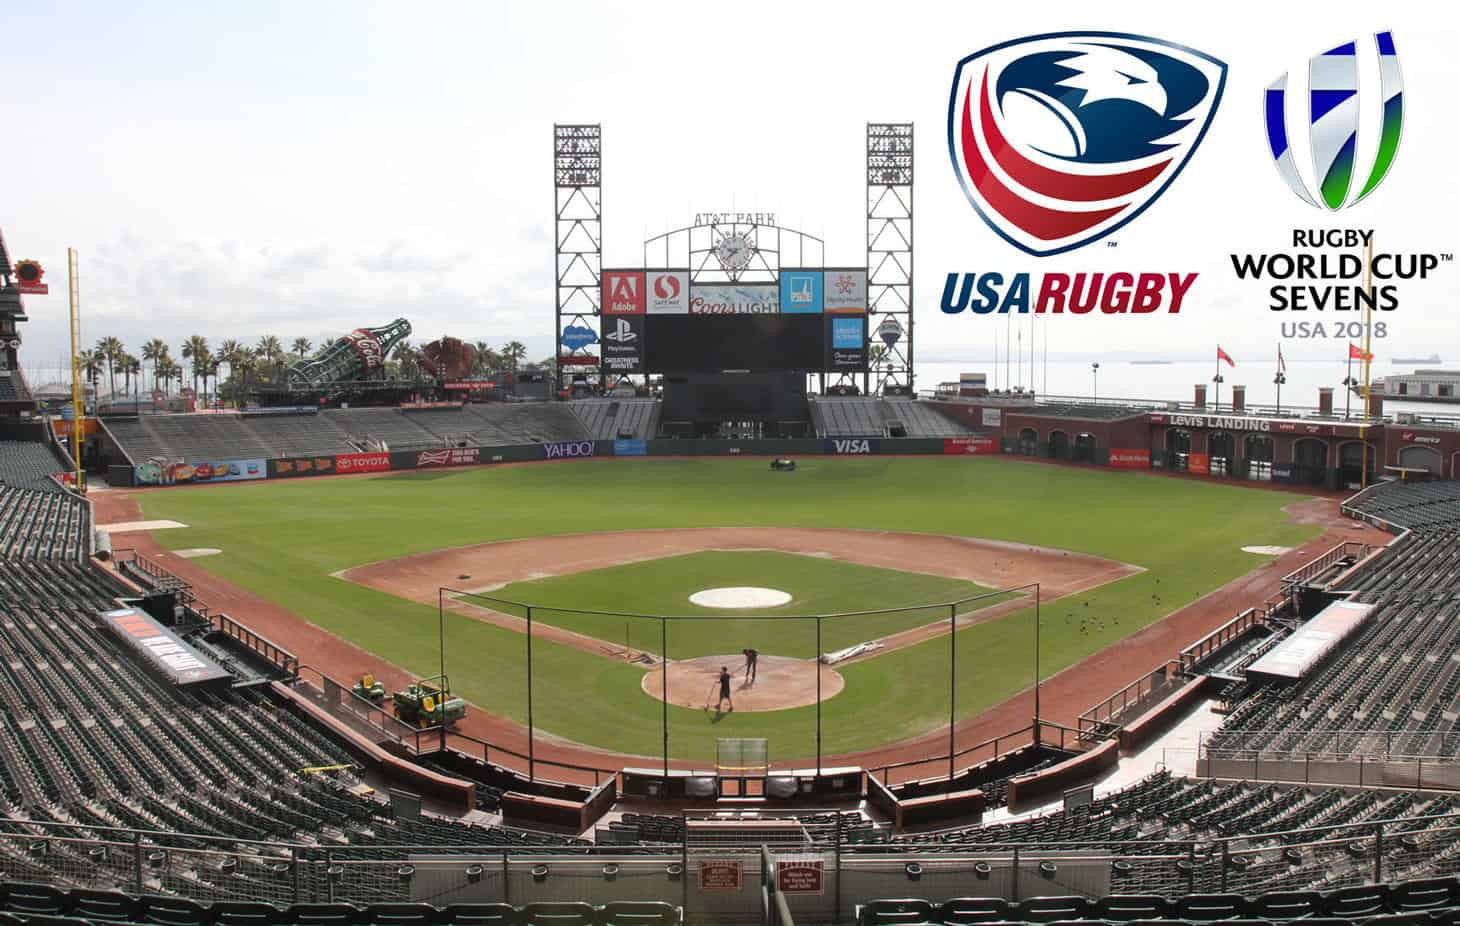 The Rugby World Cup Sevens 2018 in San Francisco is due to to take place at a converted baseball stadium ©USA Rugby